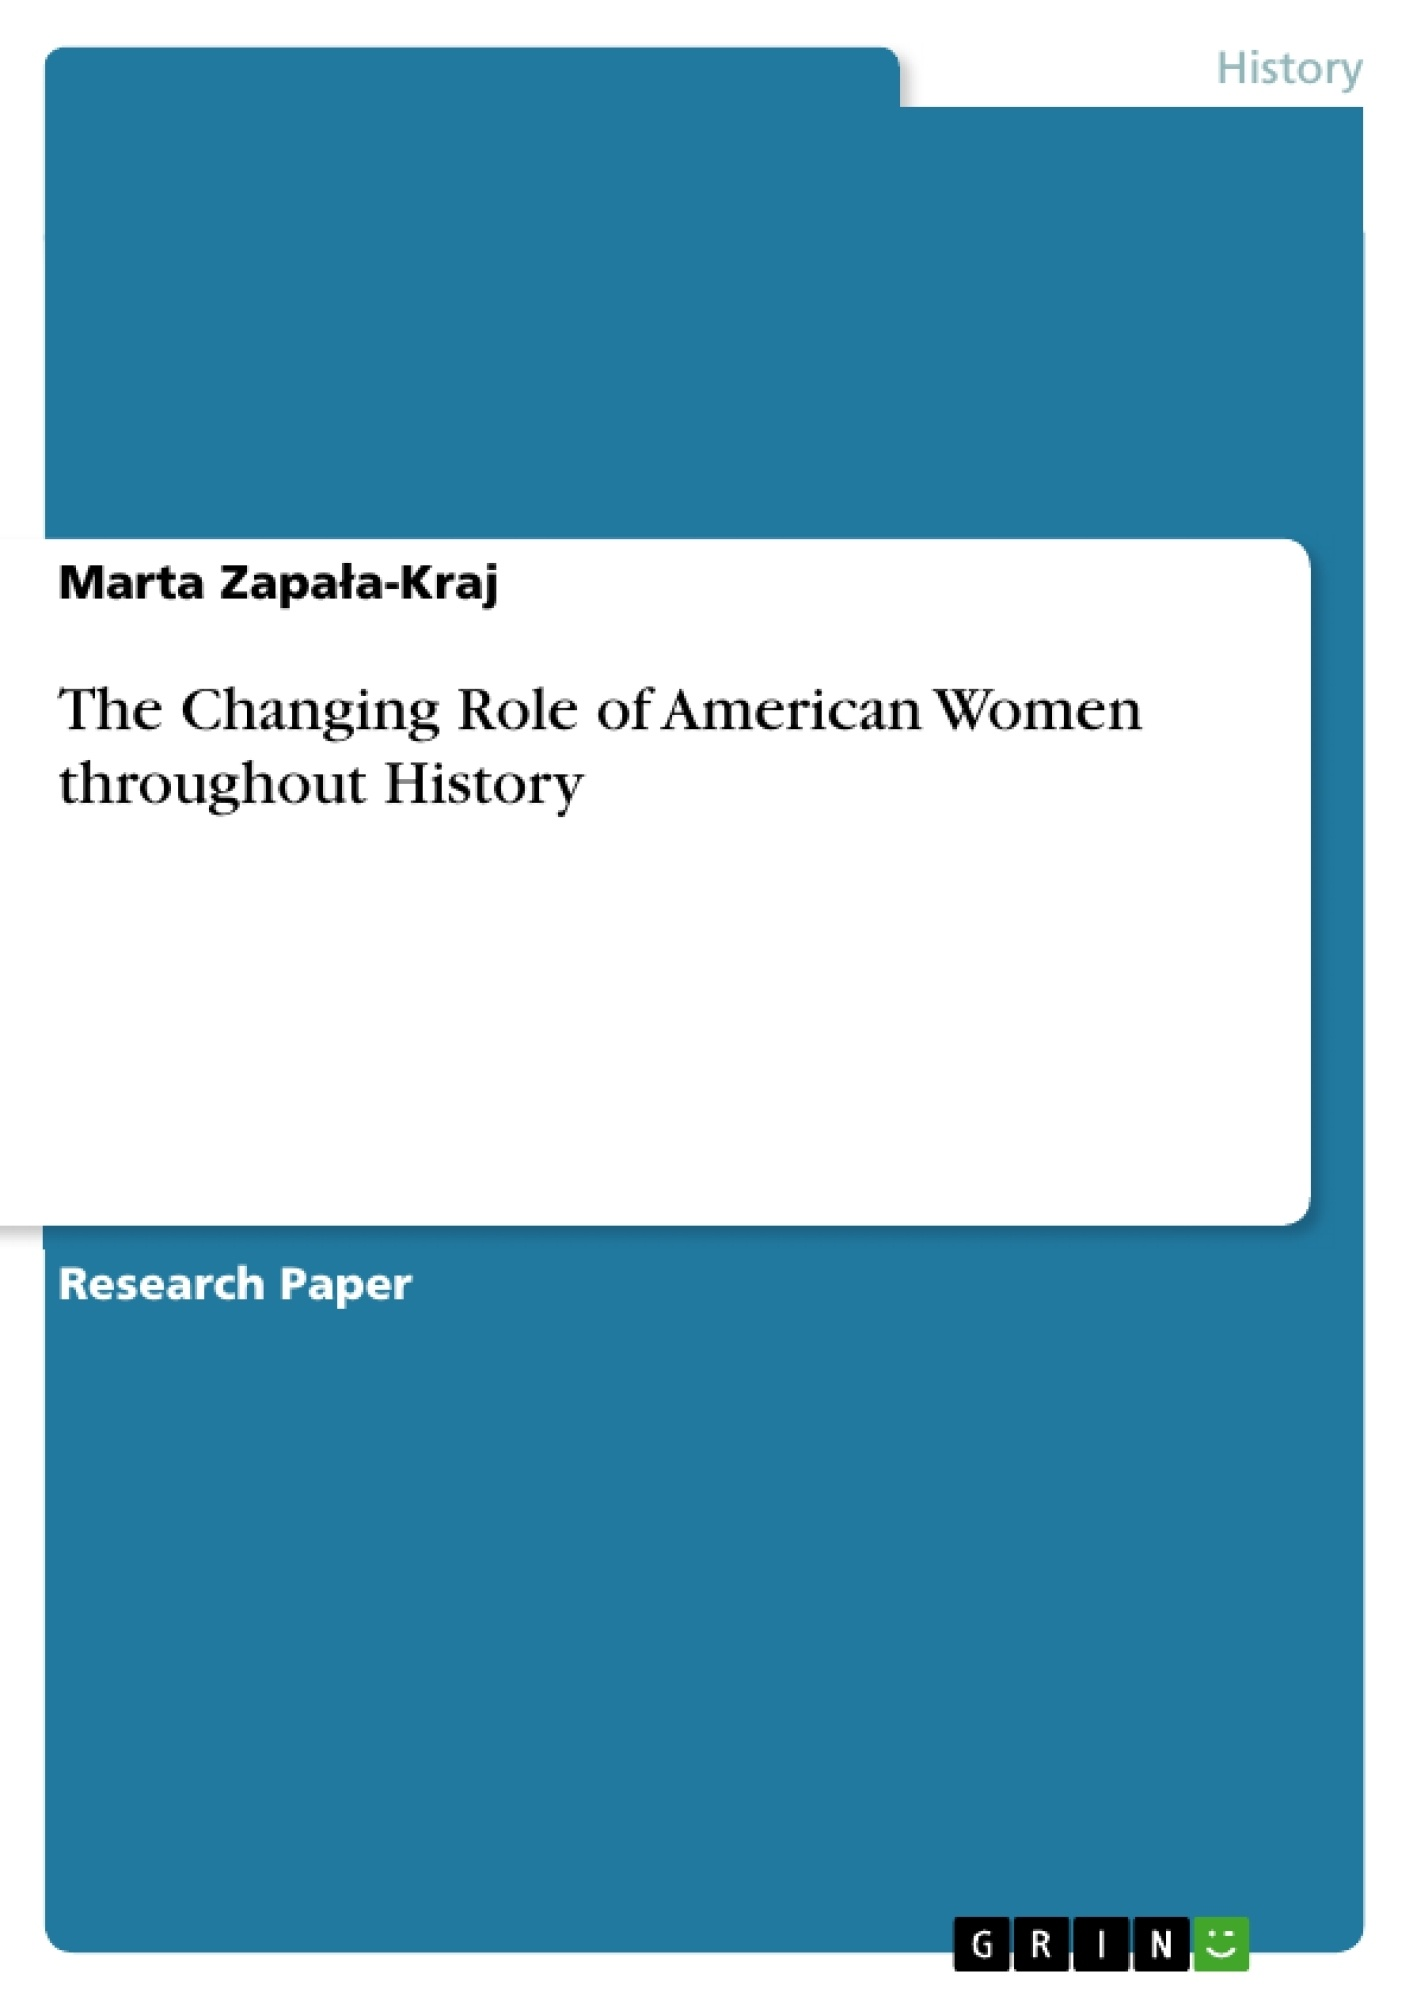 Title: The Changing Role of American Women throughout History